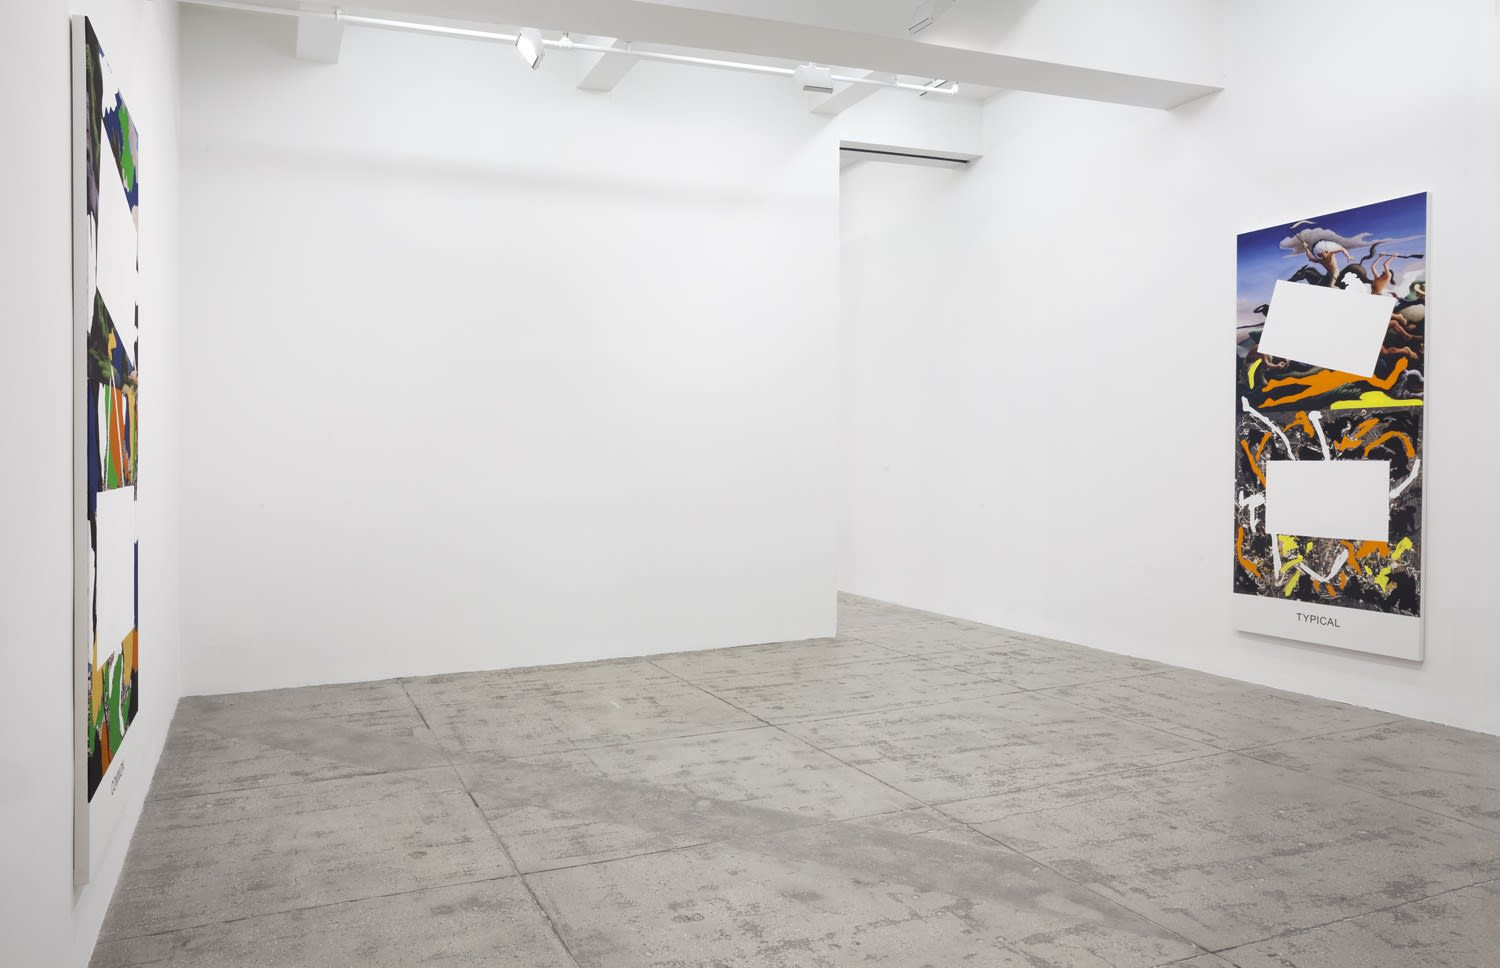 2 paintings partially covered with white rectangles hanging in a gallery space.